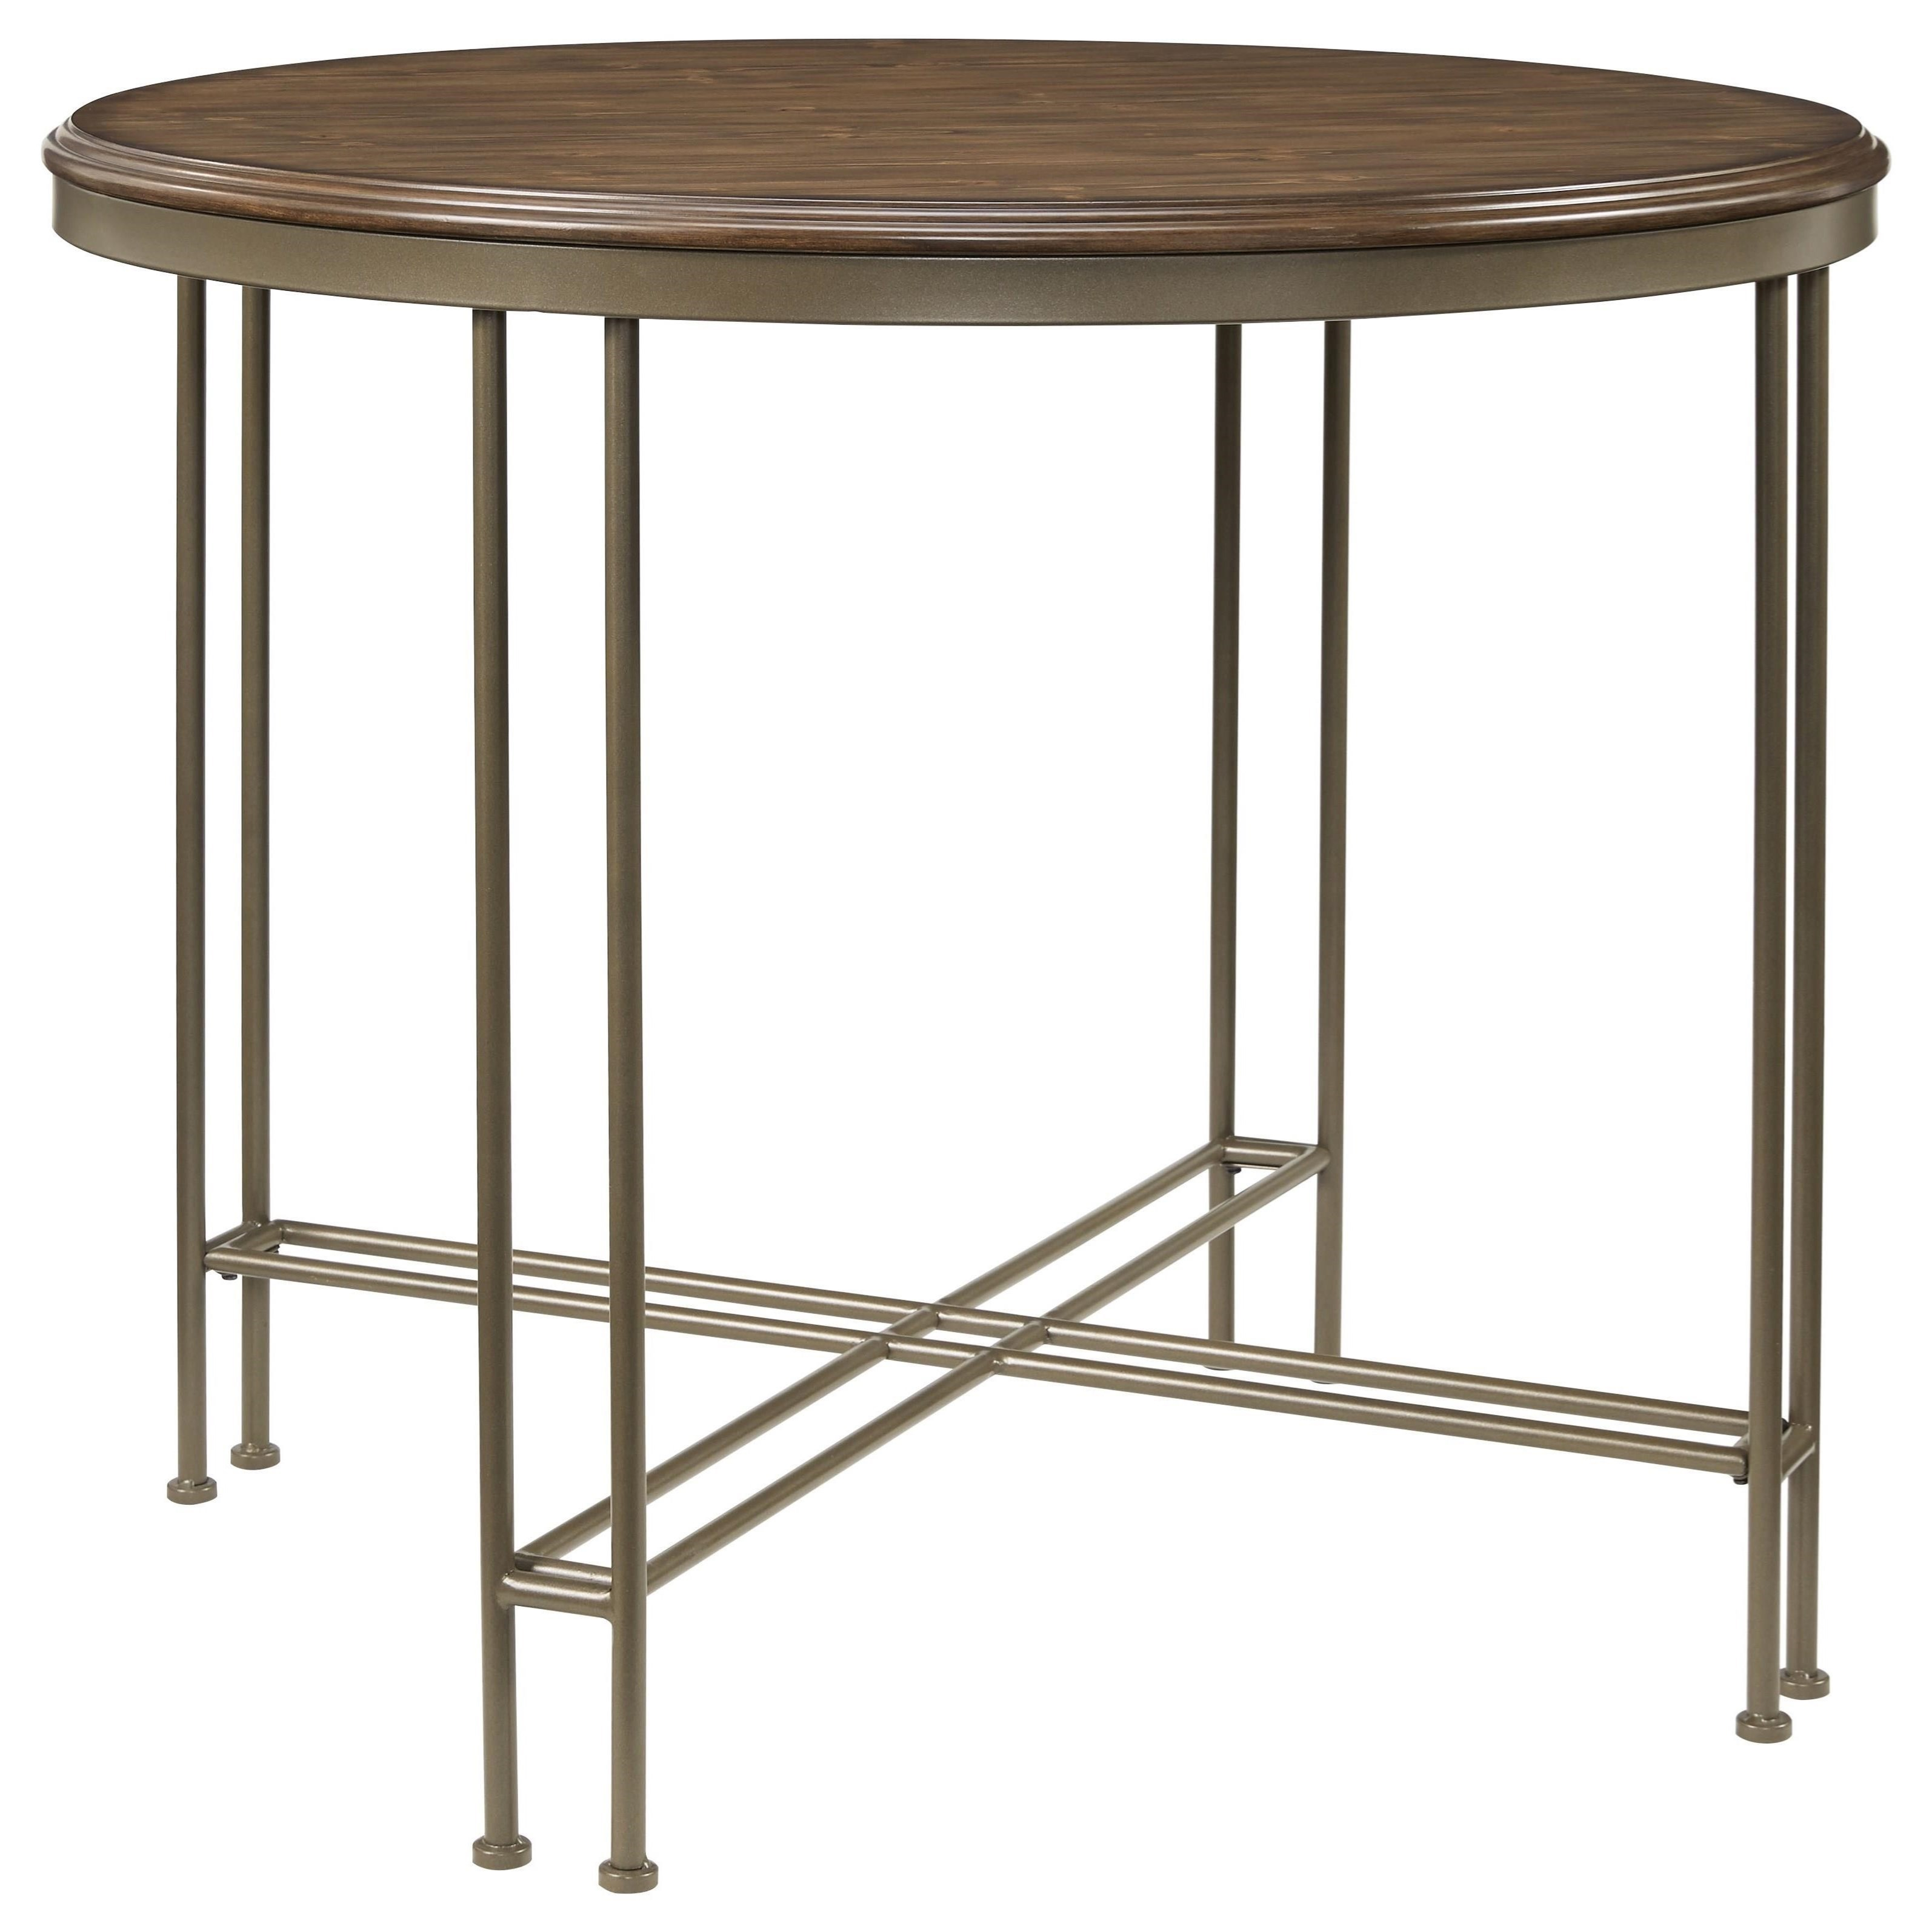 Standard Furniture Oslo Counter Height Table - Item Number: 11601